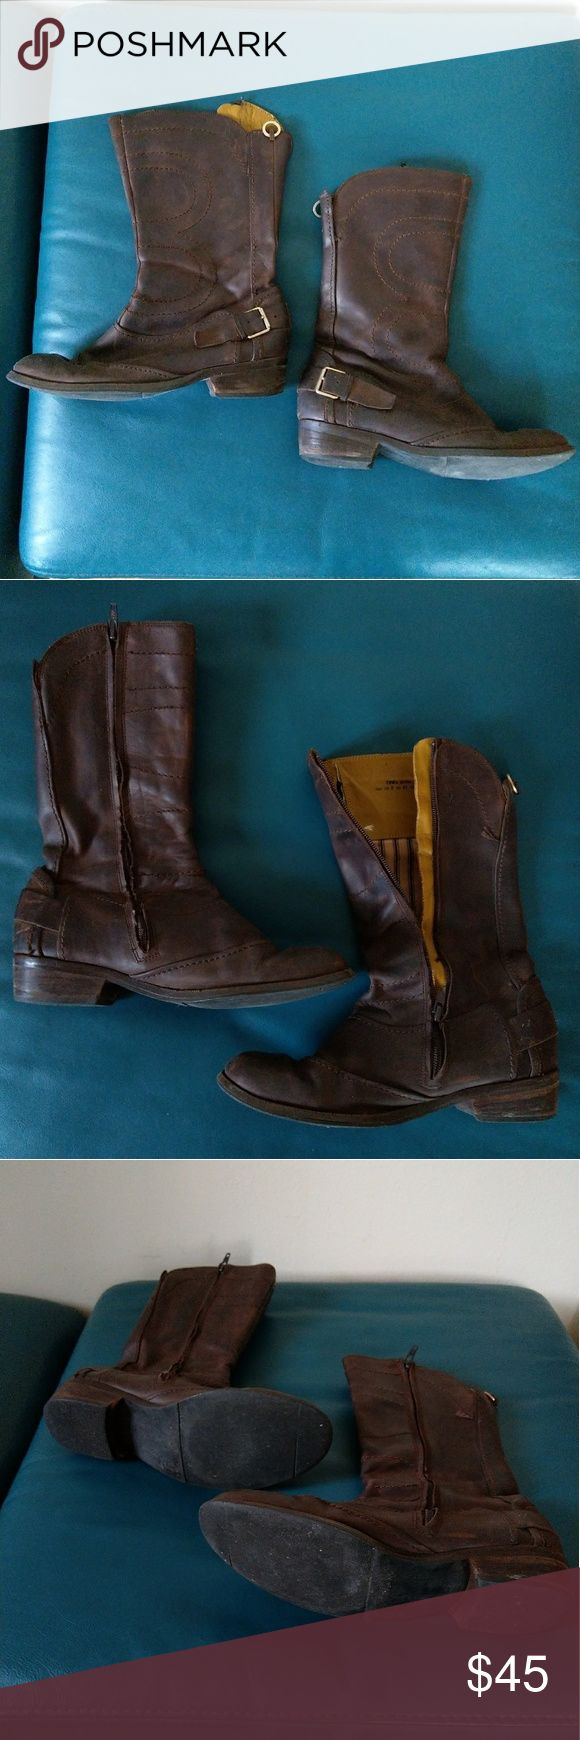 Chocolate Brown Mid Calf Leather Boots Chocolate Brown Mid Calf Leather Boots, Good condition, but see pics of interior seam damage. These were resoled in hard rubber so they have a lot of life left in them! Ted Baker Shoes #midcalfboots